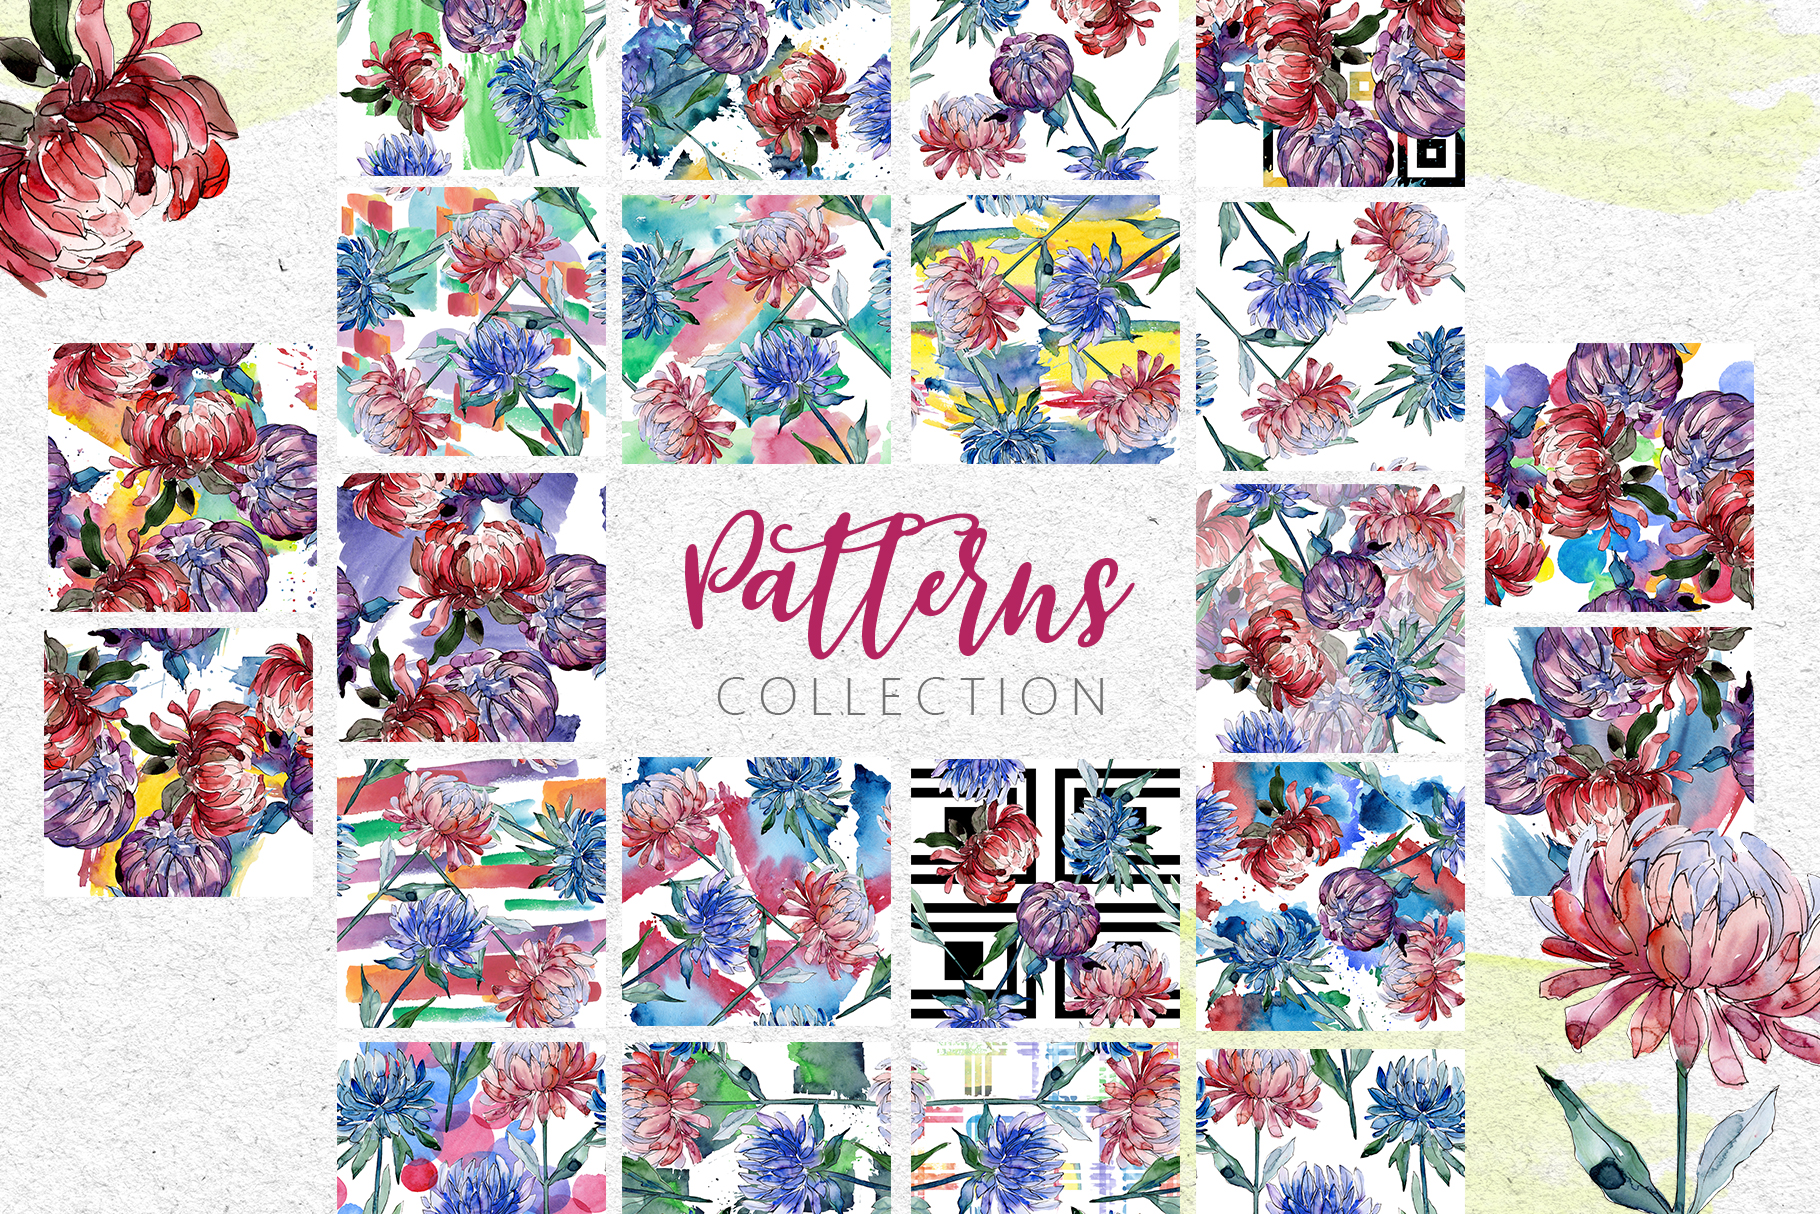 Autumn Asters Watercolor png example image 3